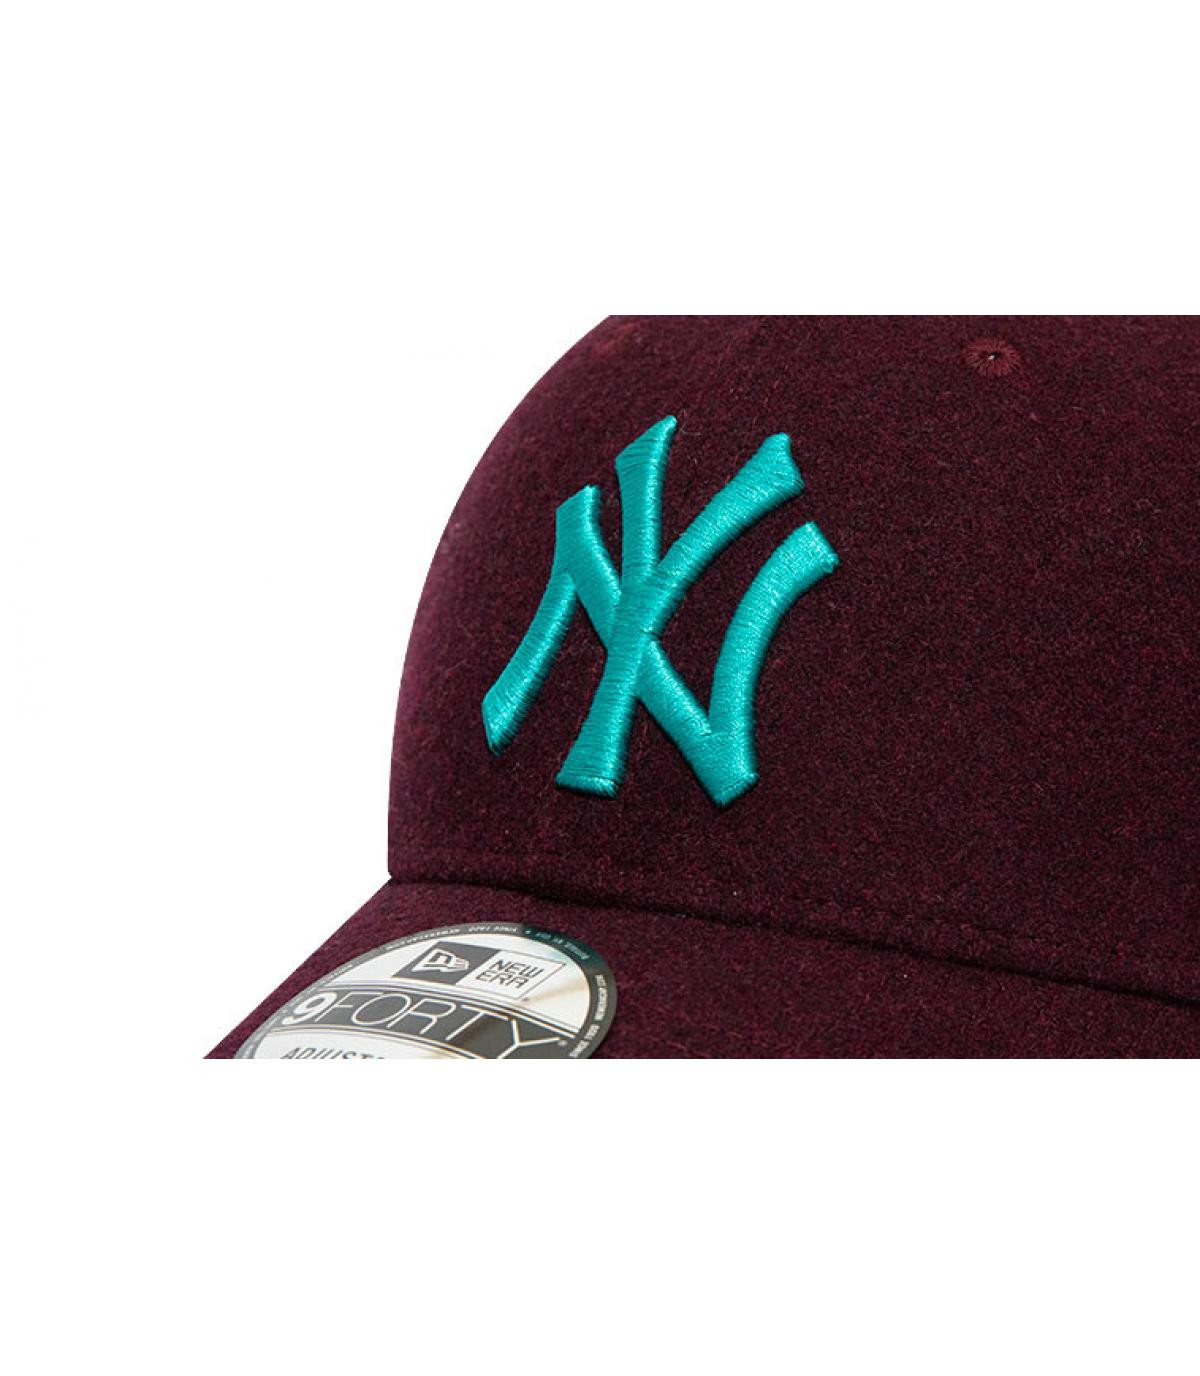 Détails Casquette MLB Melton NY 940 graphite maroon teal - image 3